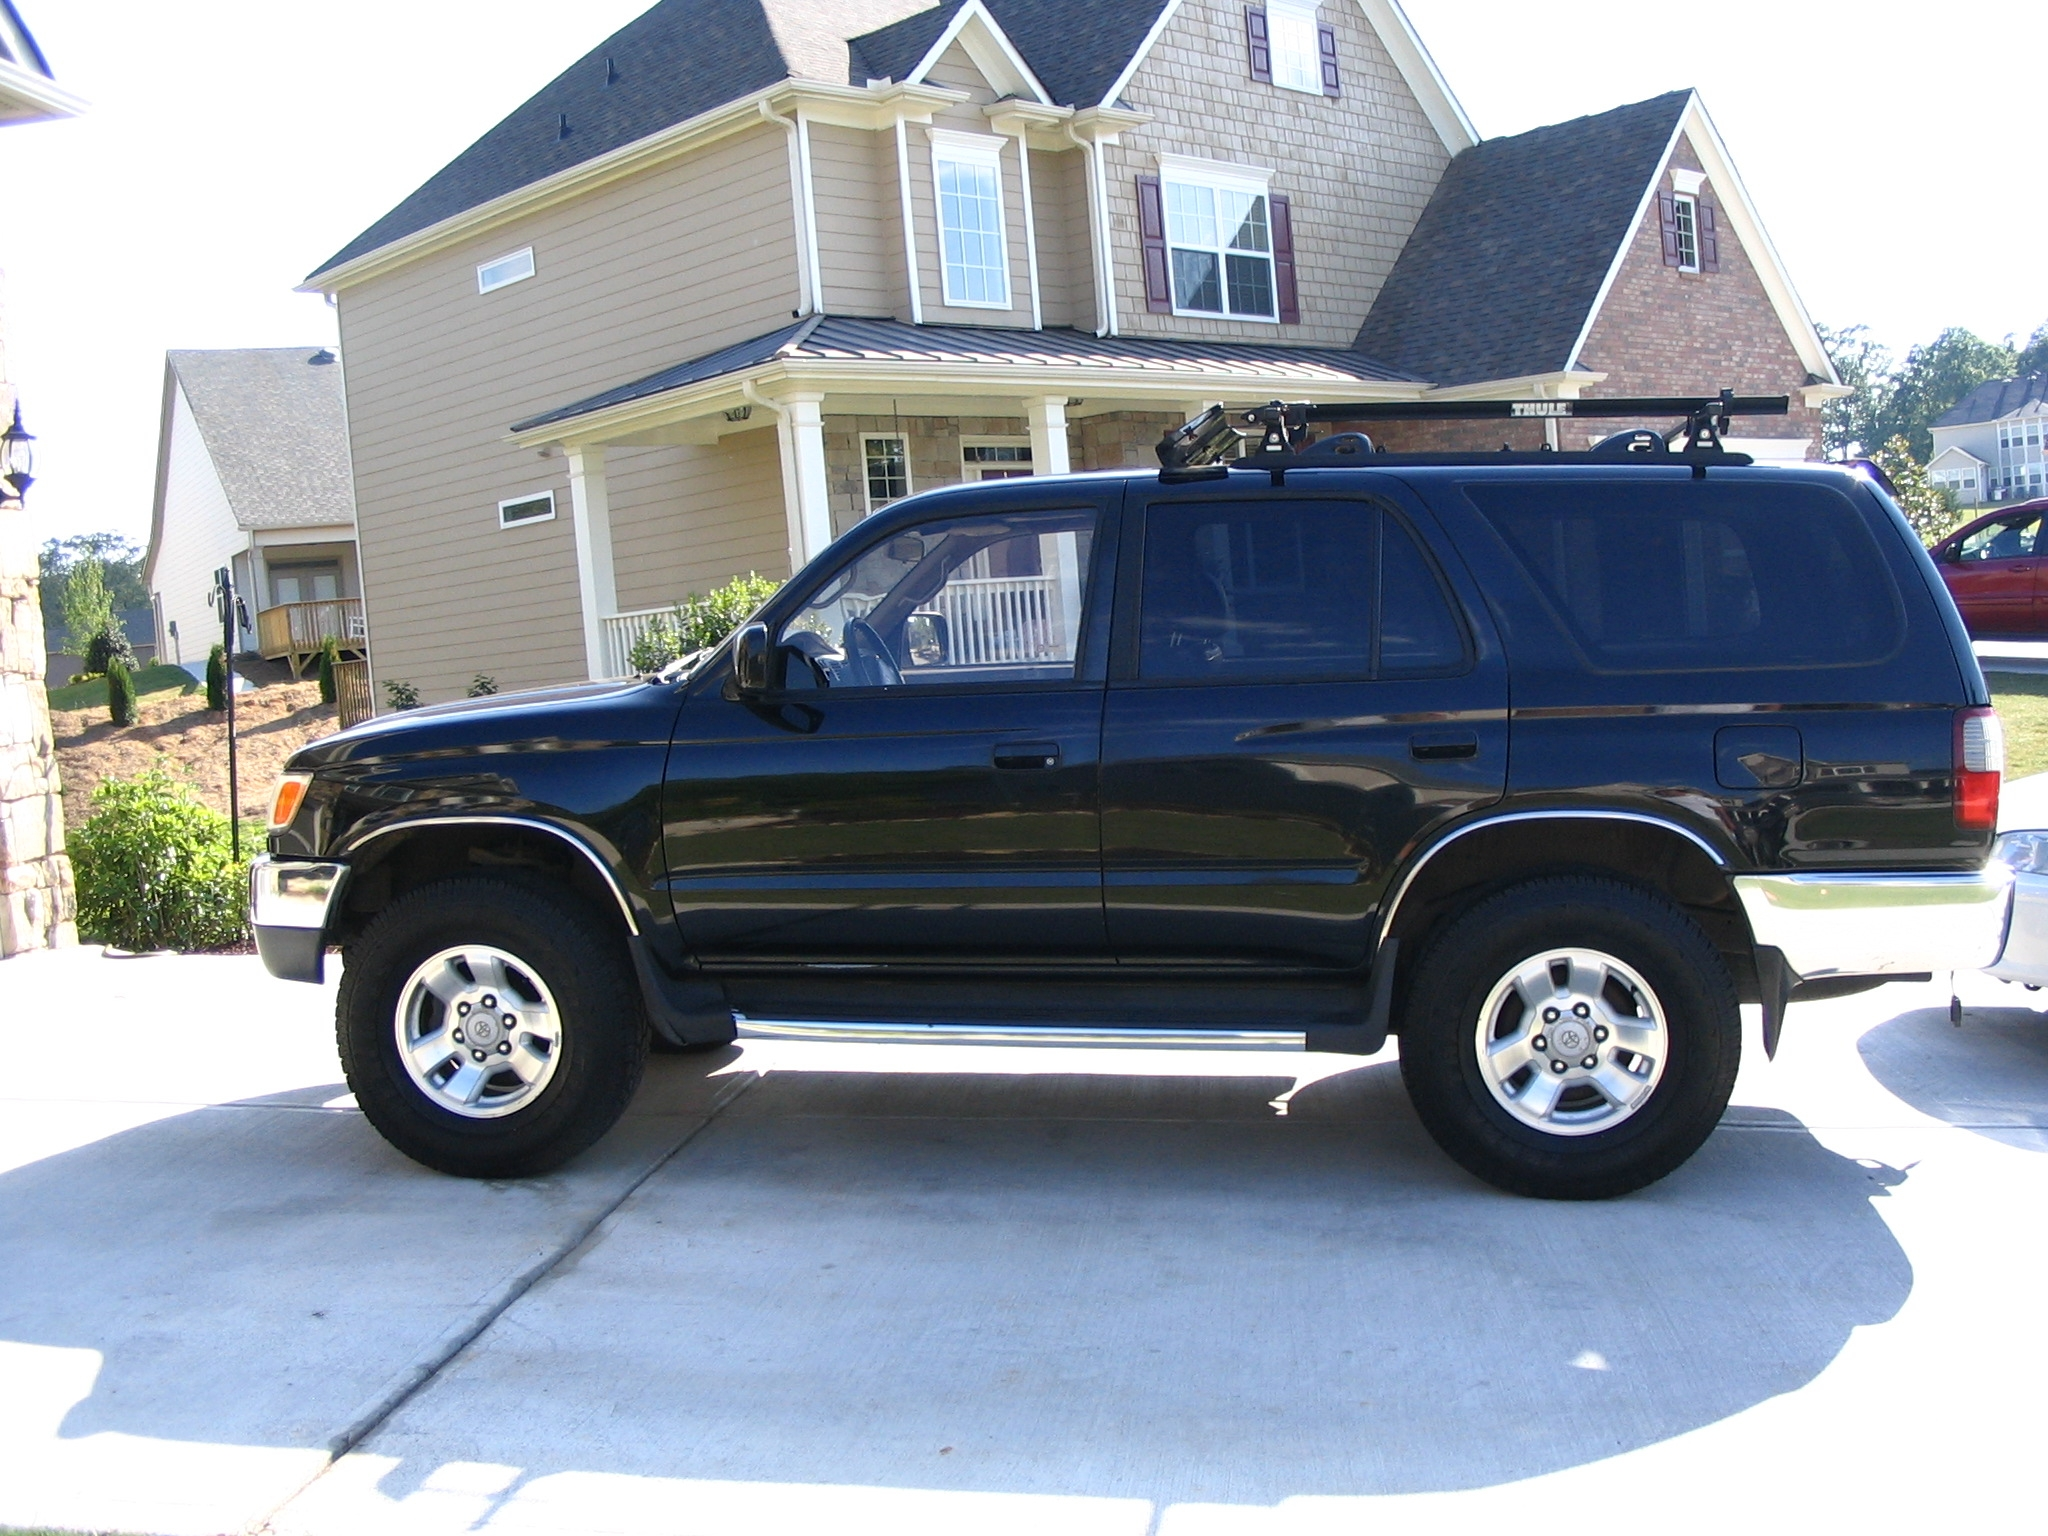 3rd Gen 4Runner Buyers Guide Toyota 4Runner Forum dinosauriensfo